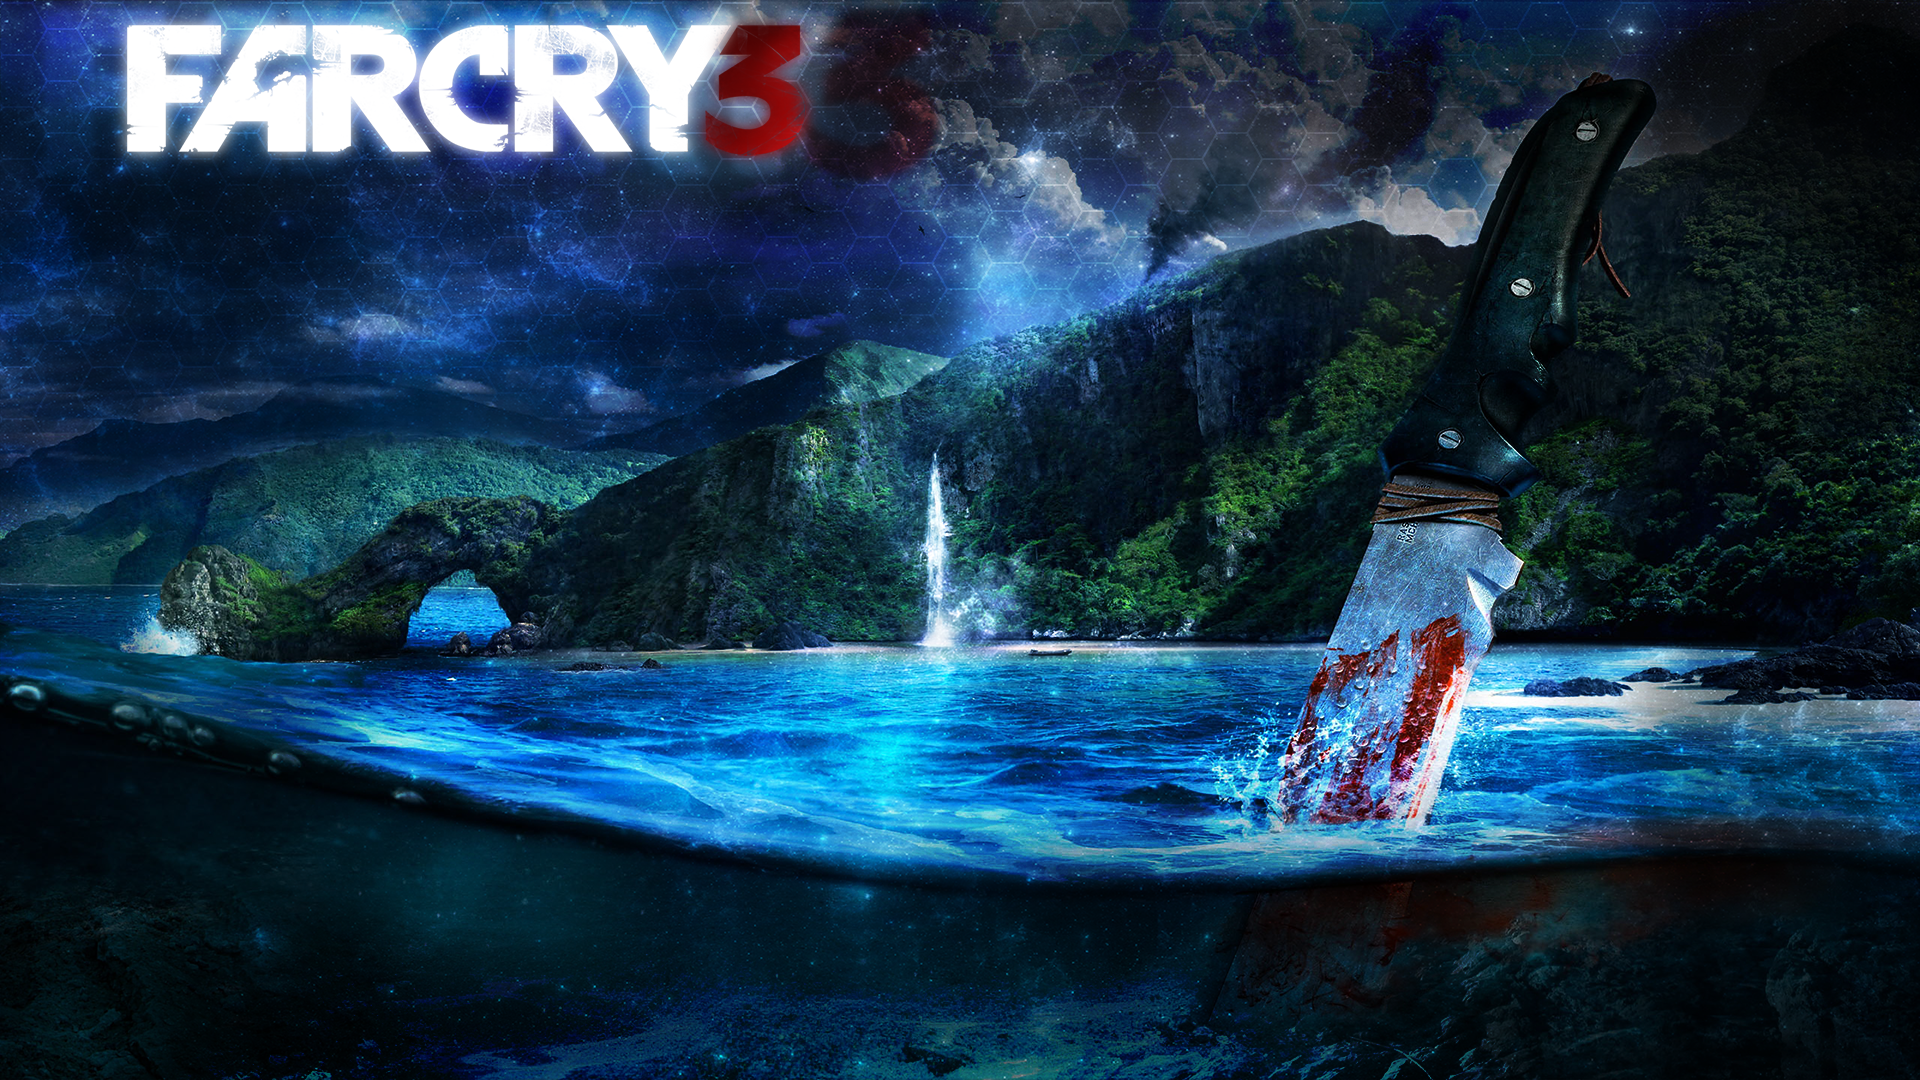 PC, Laptop Far Cry 3 Wallpapers, BsnSCB Graphics